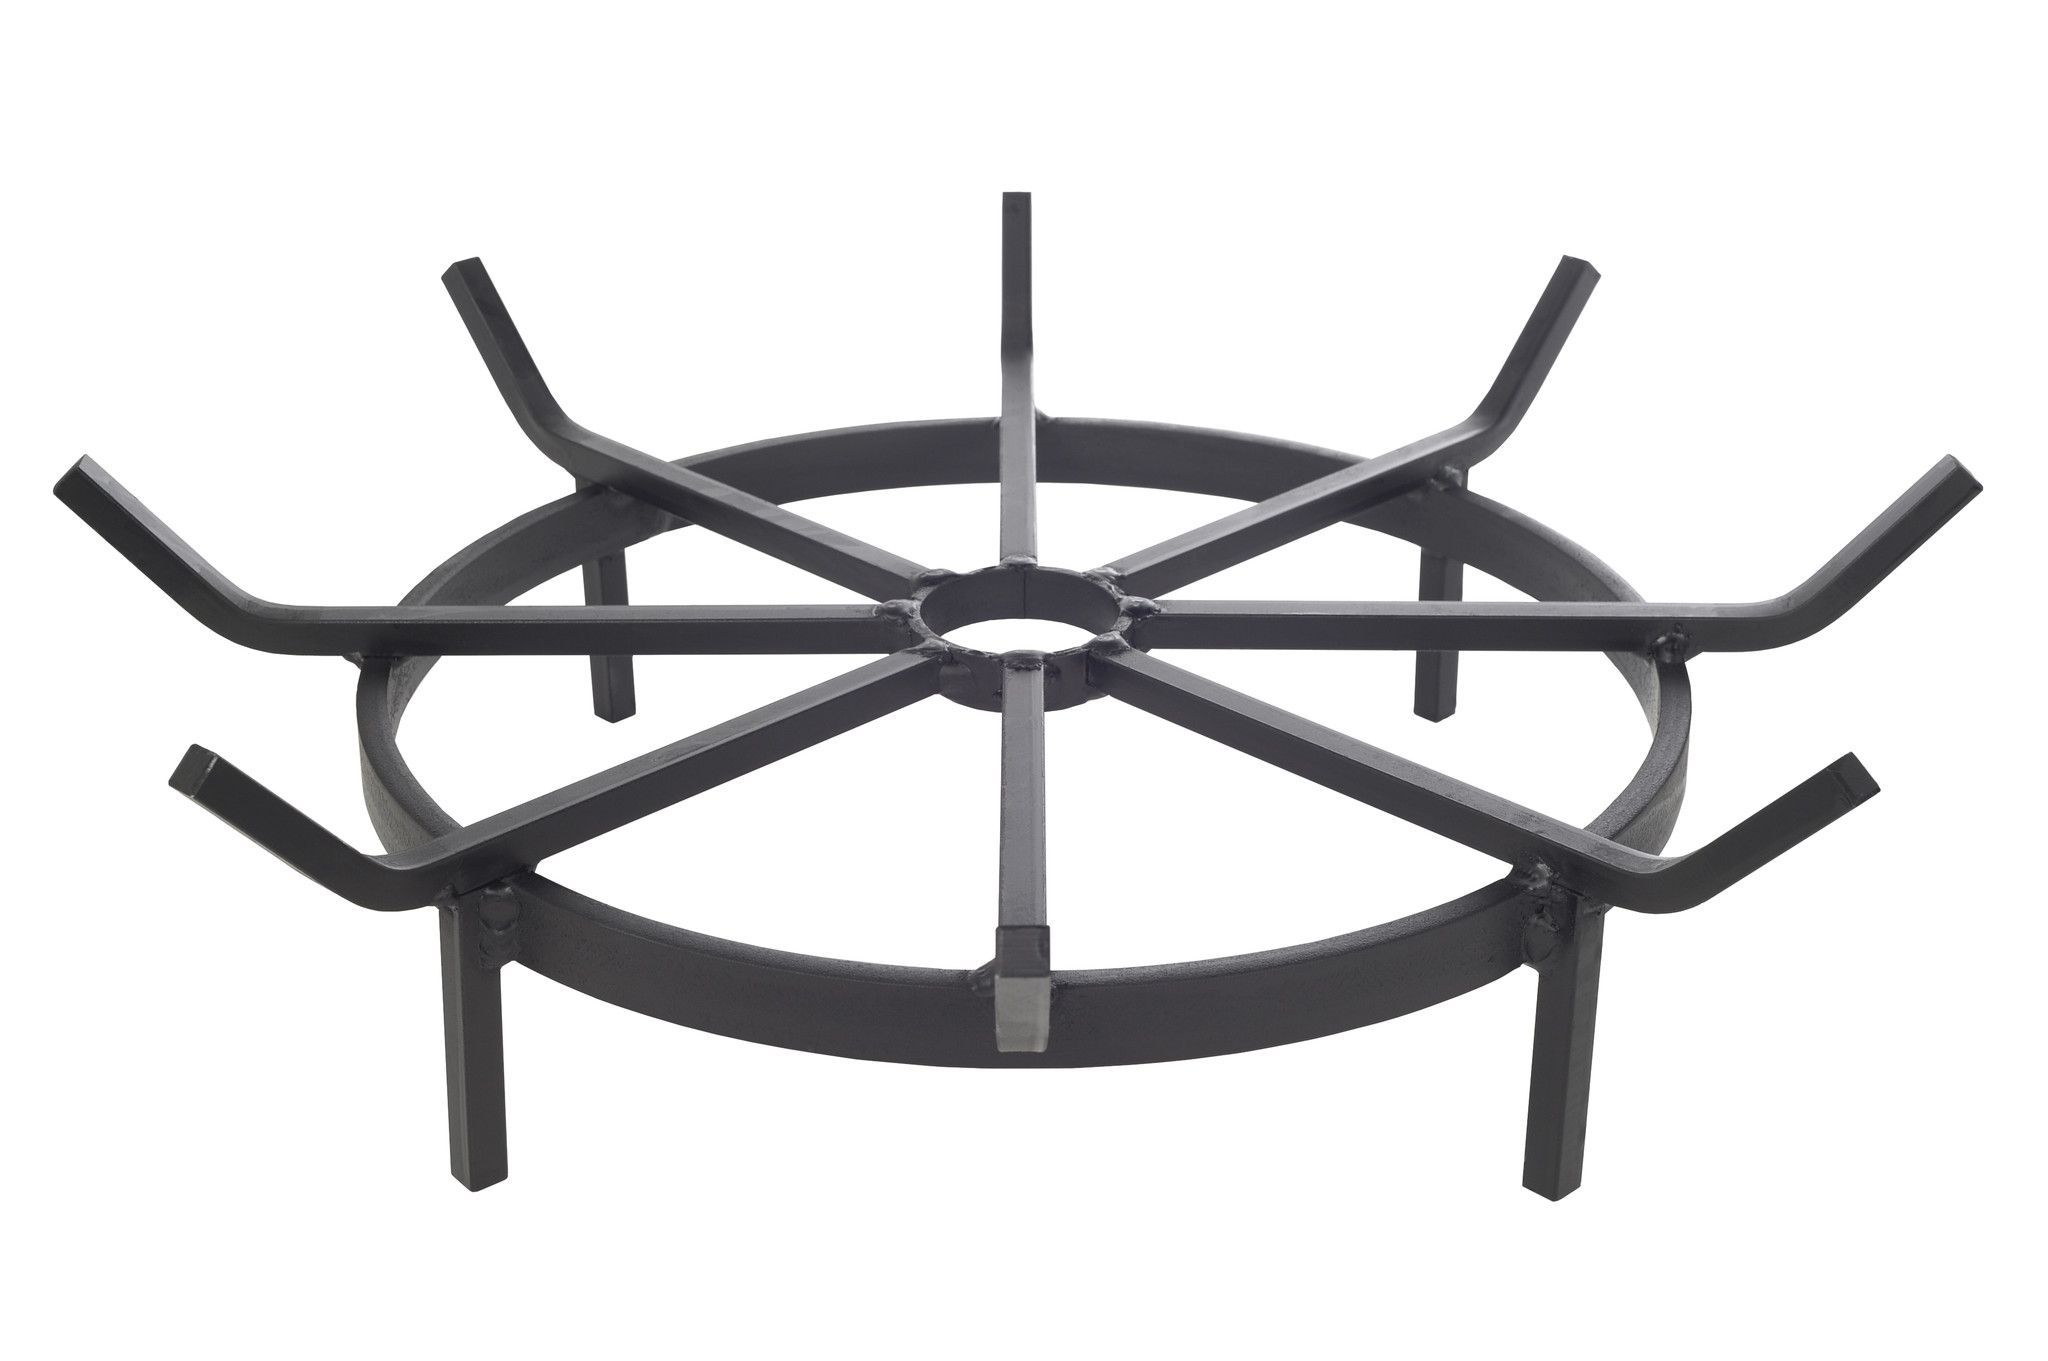 40 Inch Wagon Wheel Fire Pit Grate Wheel Fire Pit Fire Pit Grate Fire Pit Designs